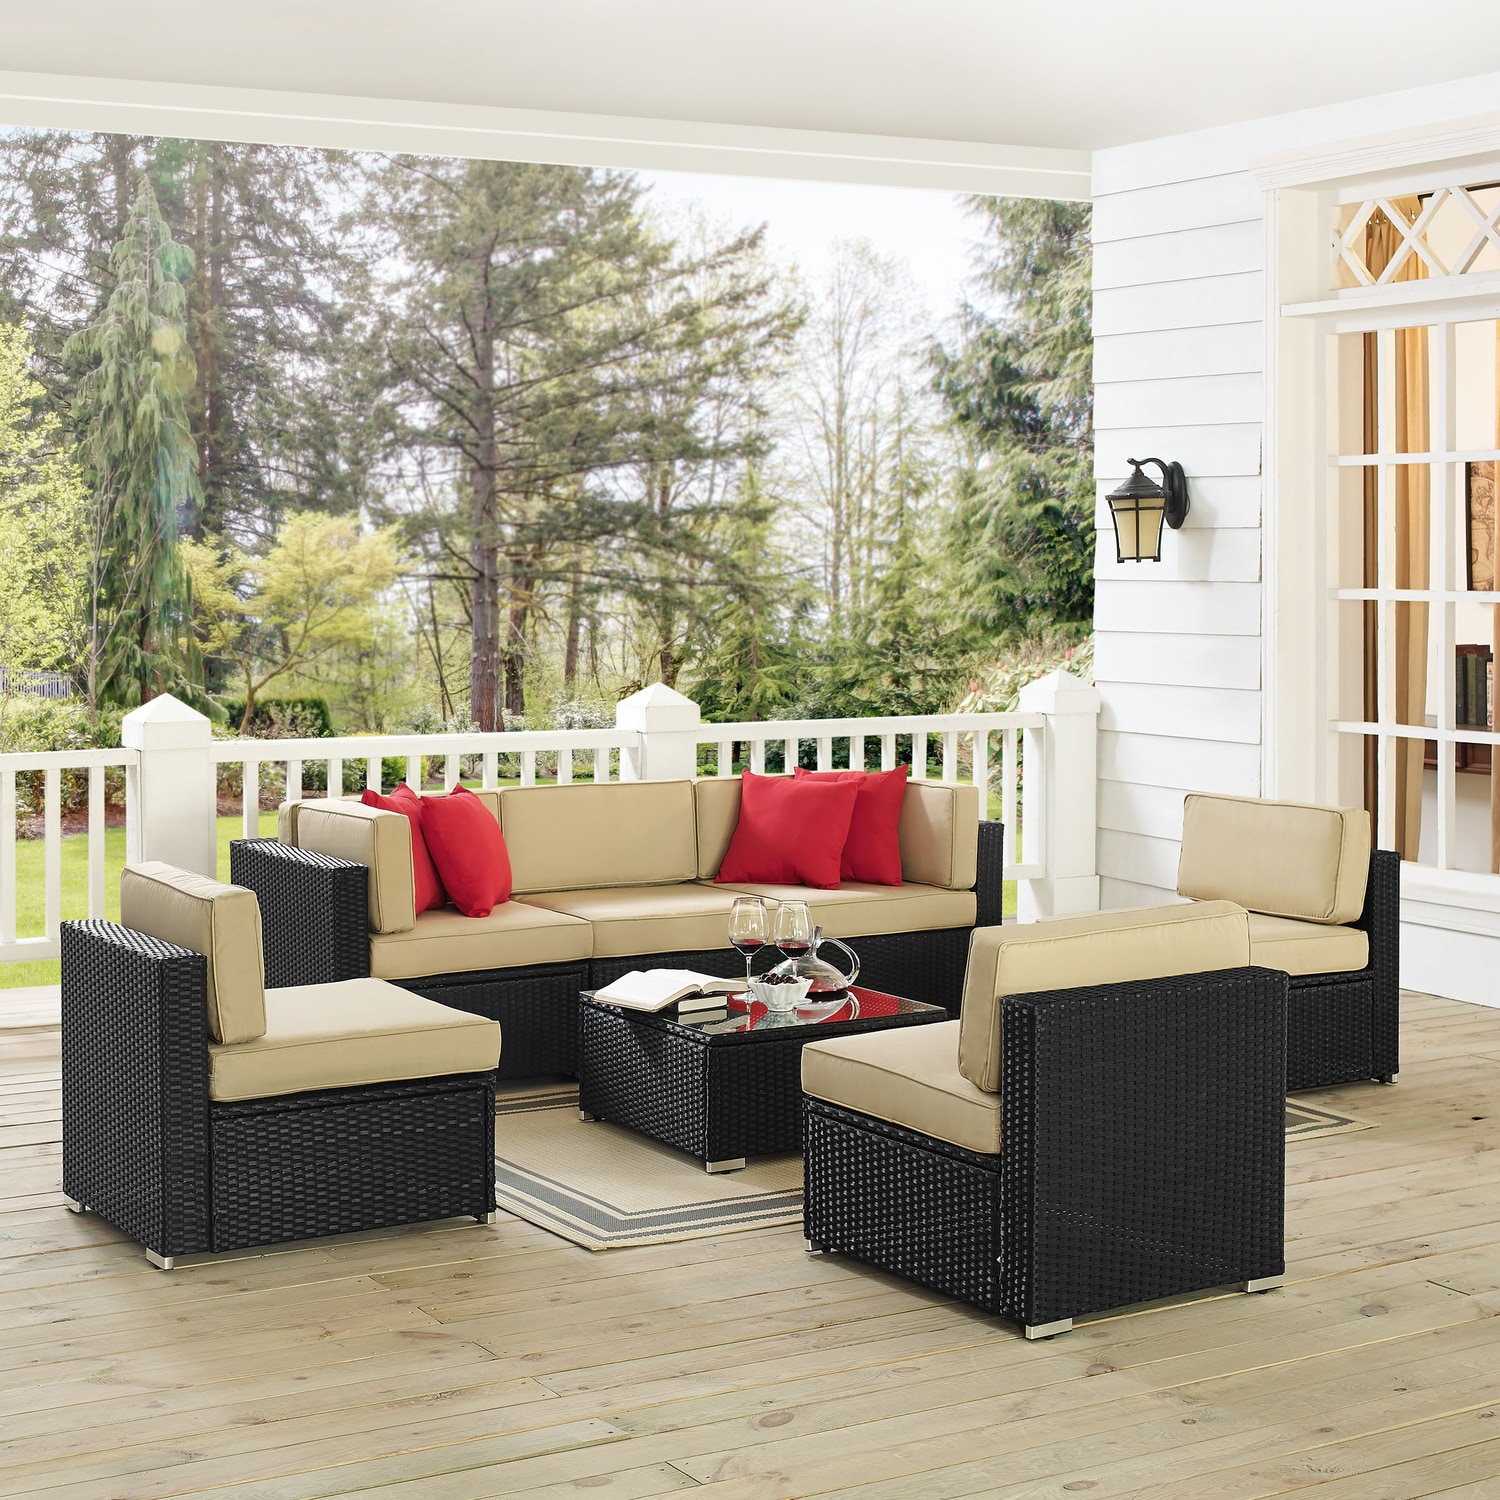 Jacques 3 Piece Outdoor Sofa 3 Armless Chairs And Coffee Table Set